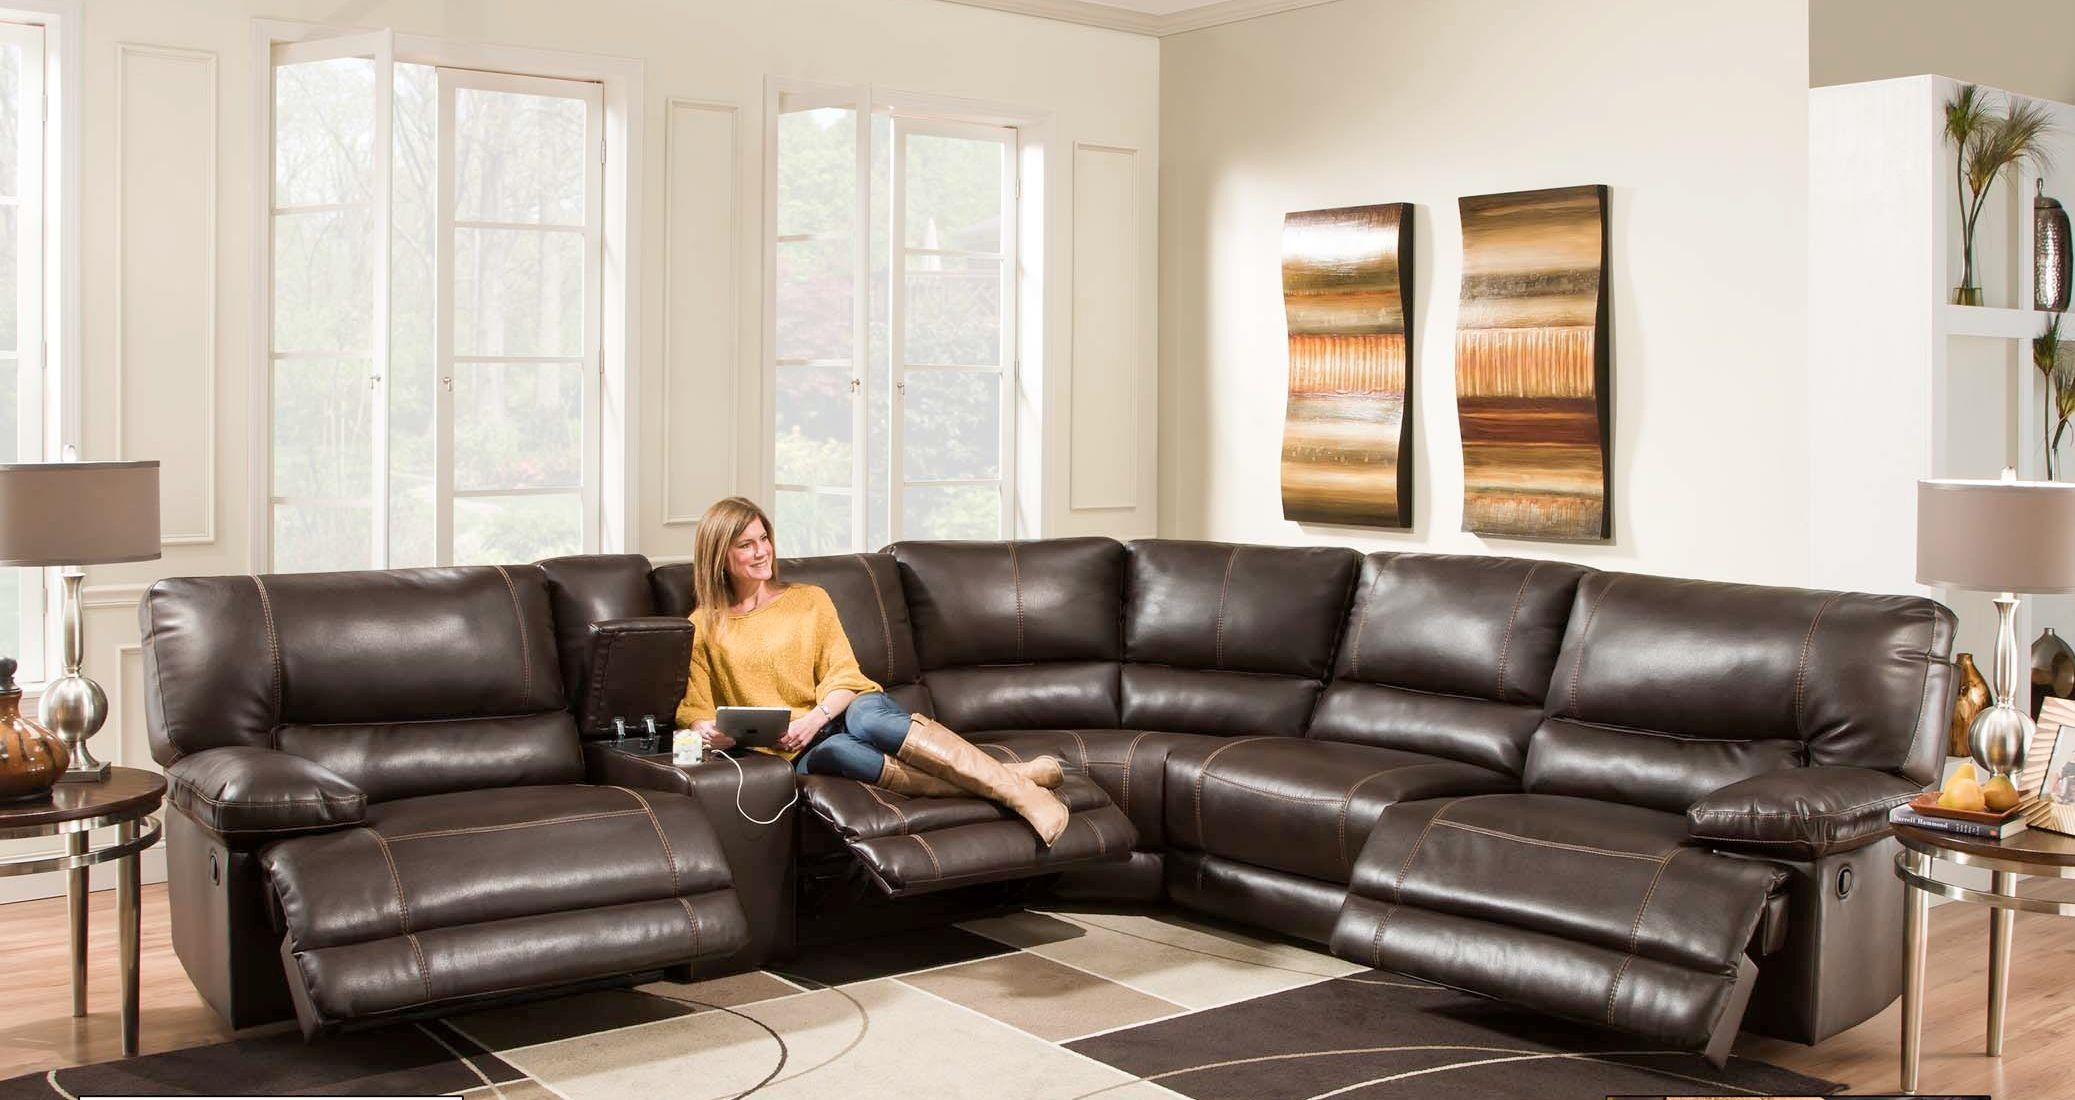 American Furniture AF800 Reclining Sectional Sofa (Seats 5)